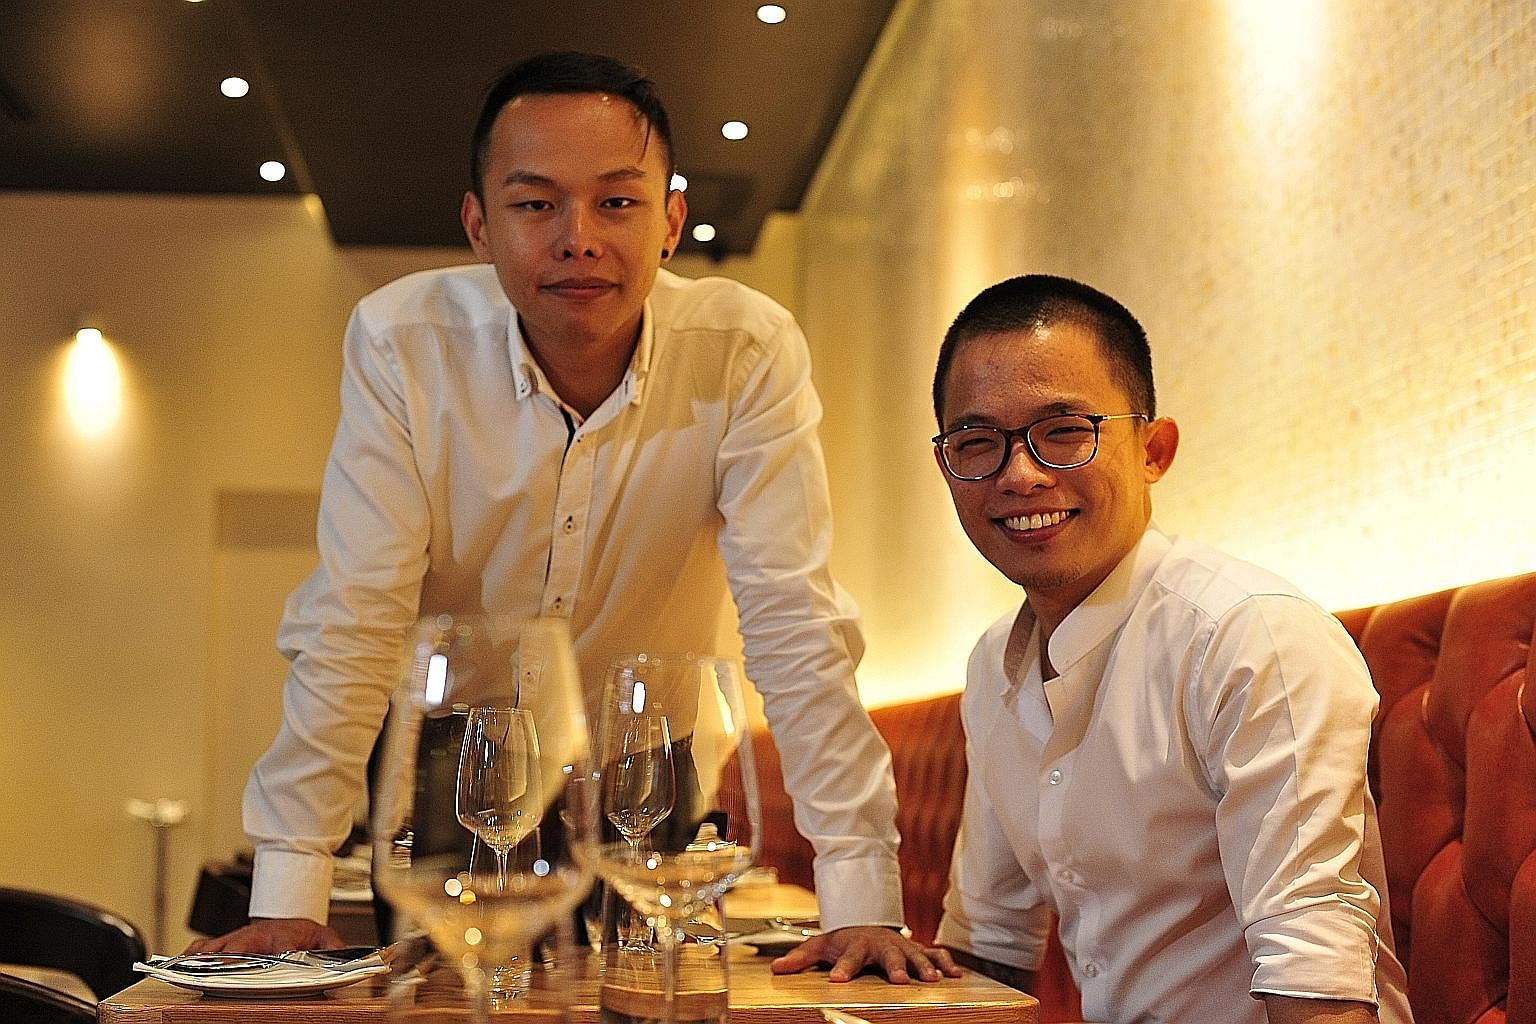 Saveur co-founder Joshua Khoo (left) now runs a hawker stall, while chef Dylan Ong is opening a casual restaurant next month.